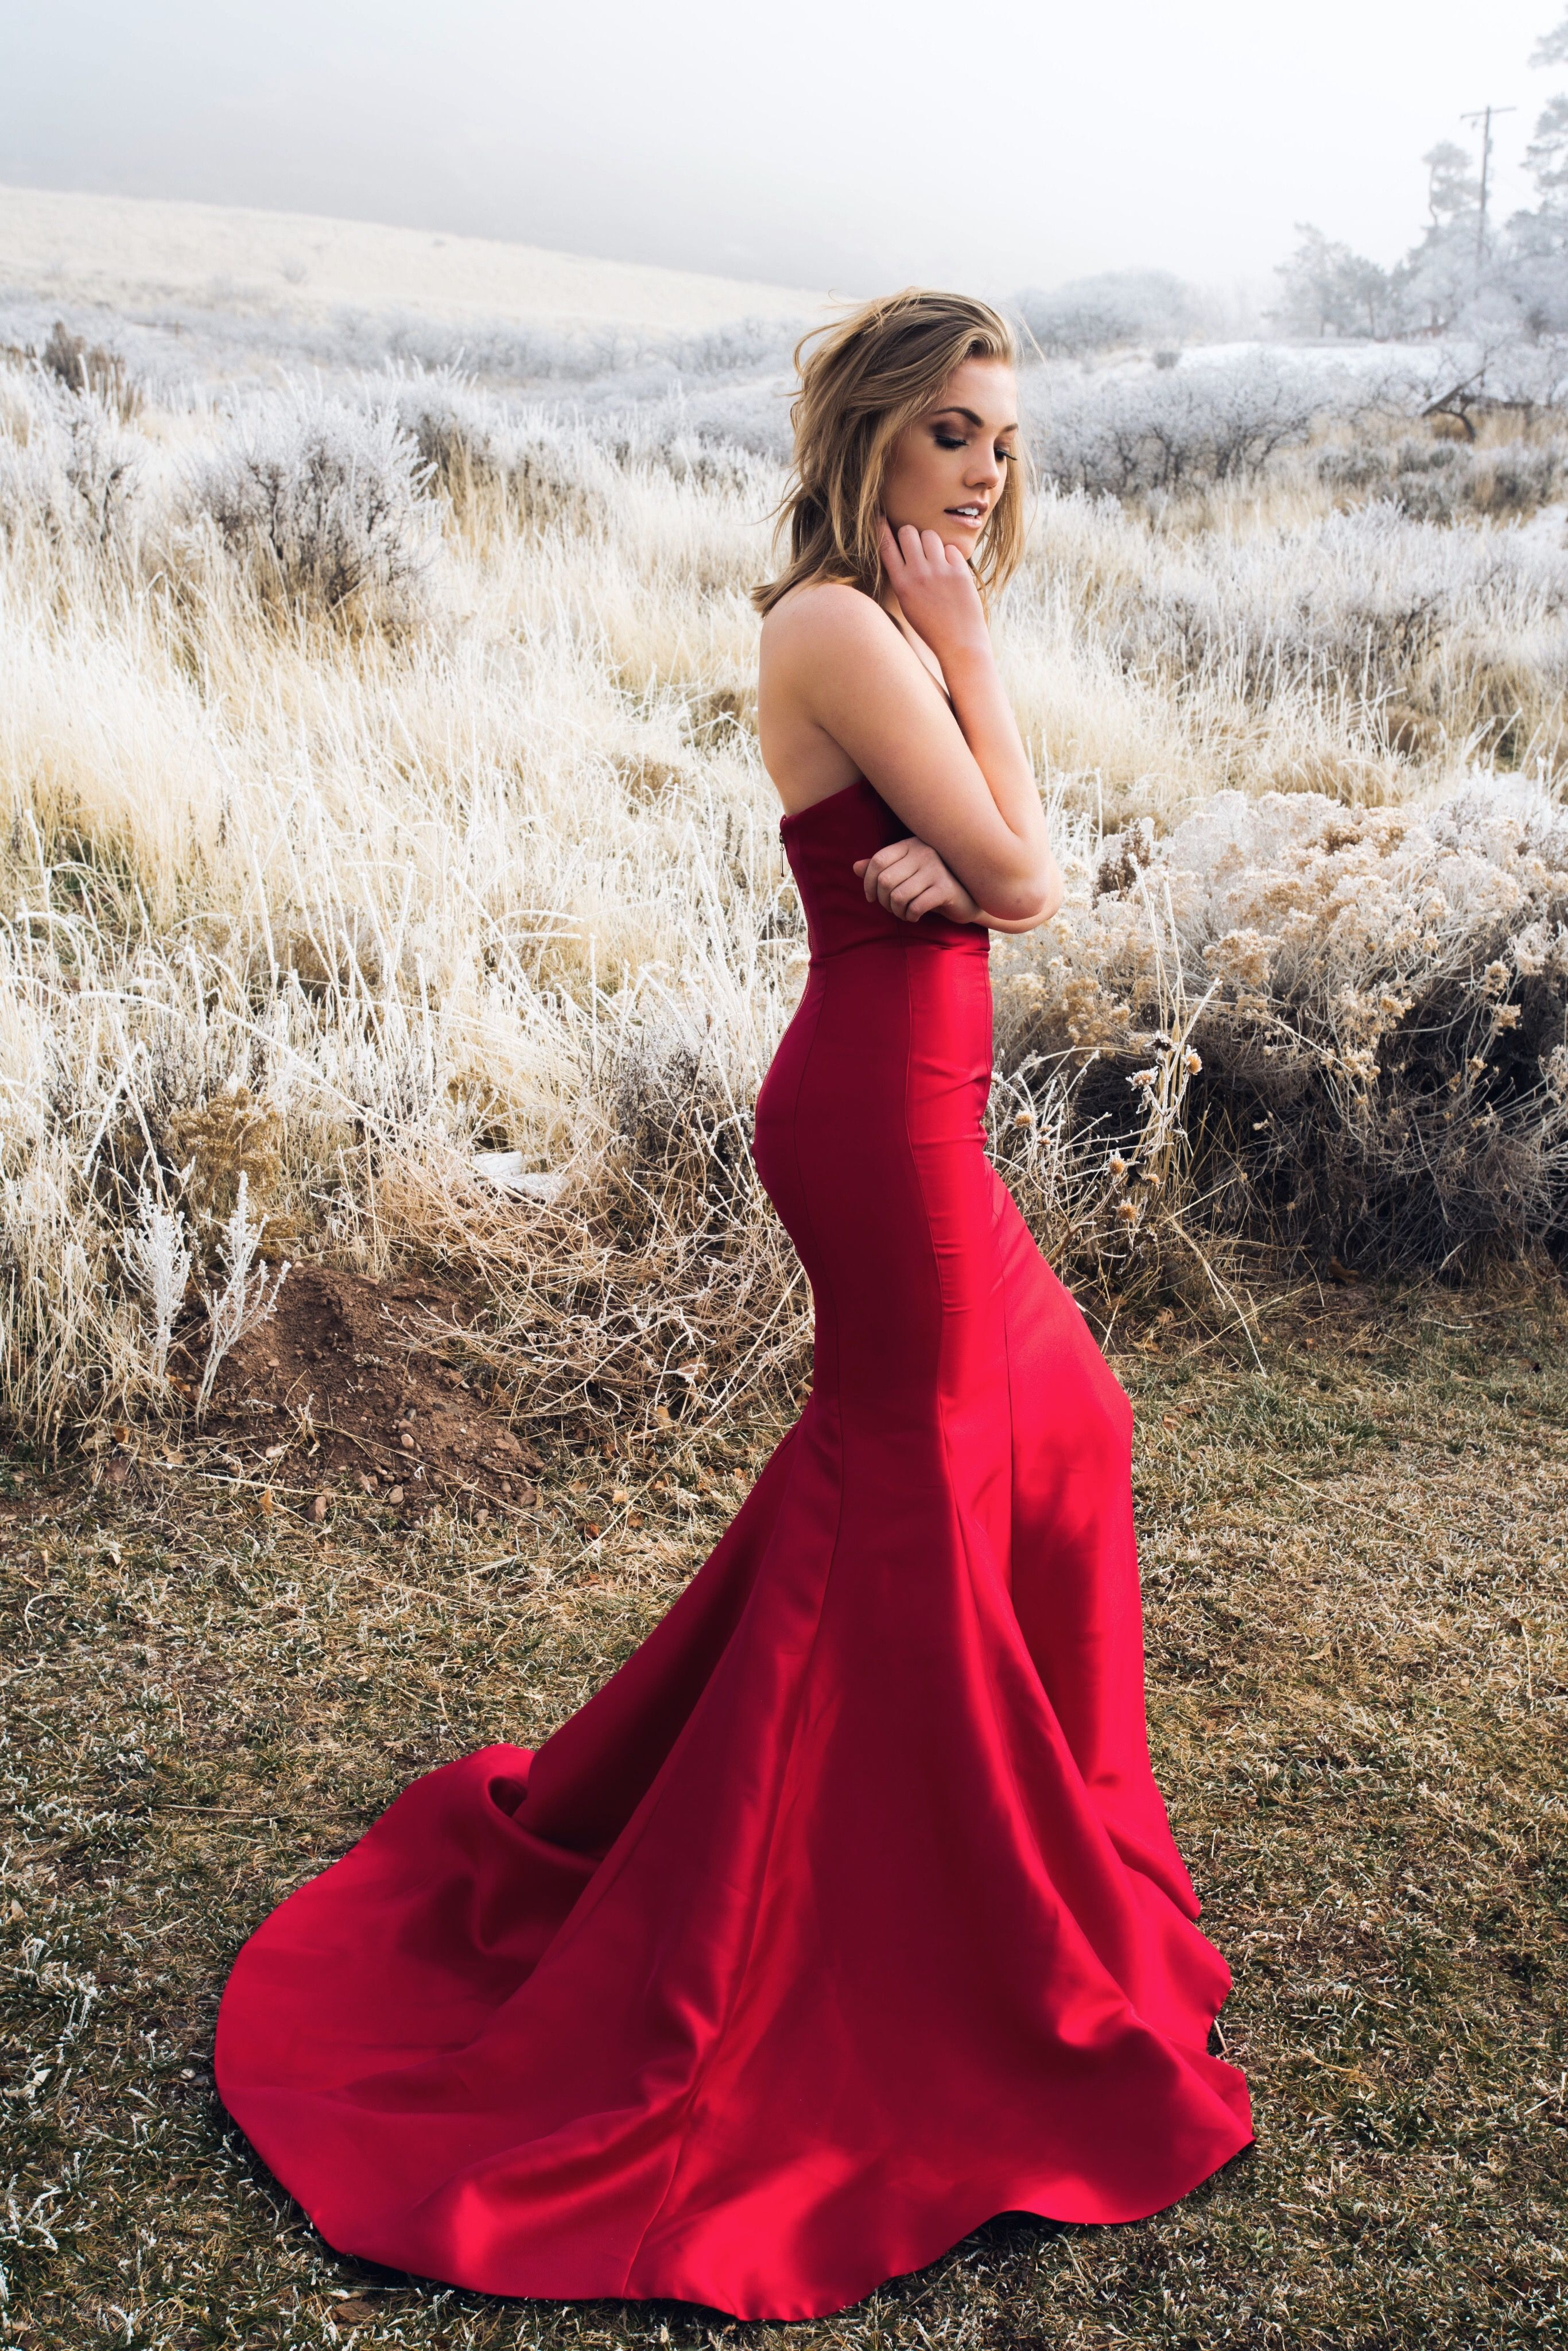 c446a5d5d14a1 Sherri Hill Spring 2018 red dress prom pageant | playing dress up ...